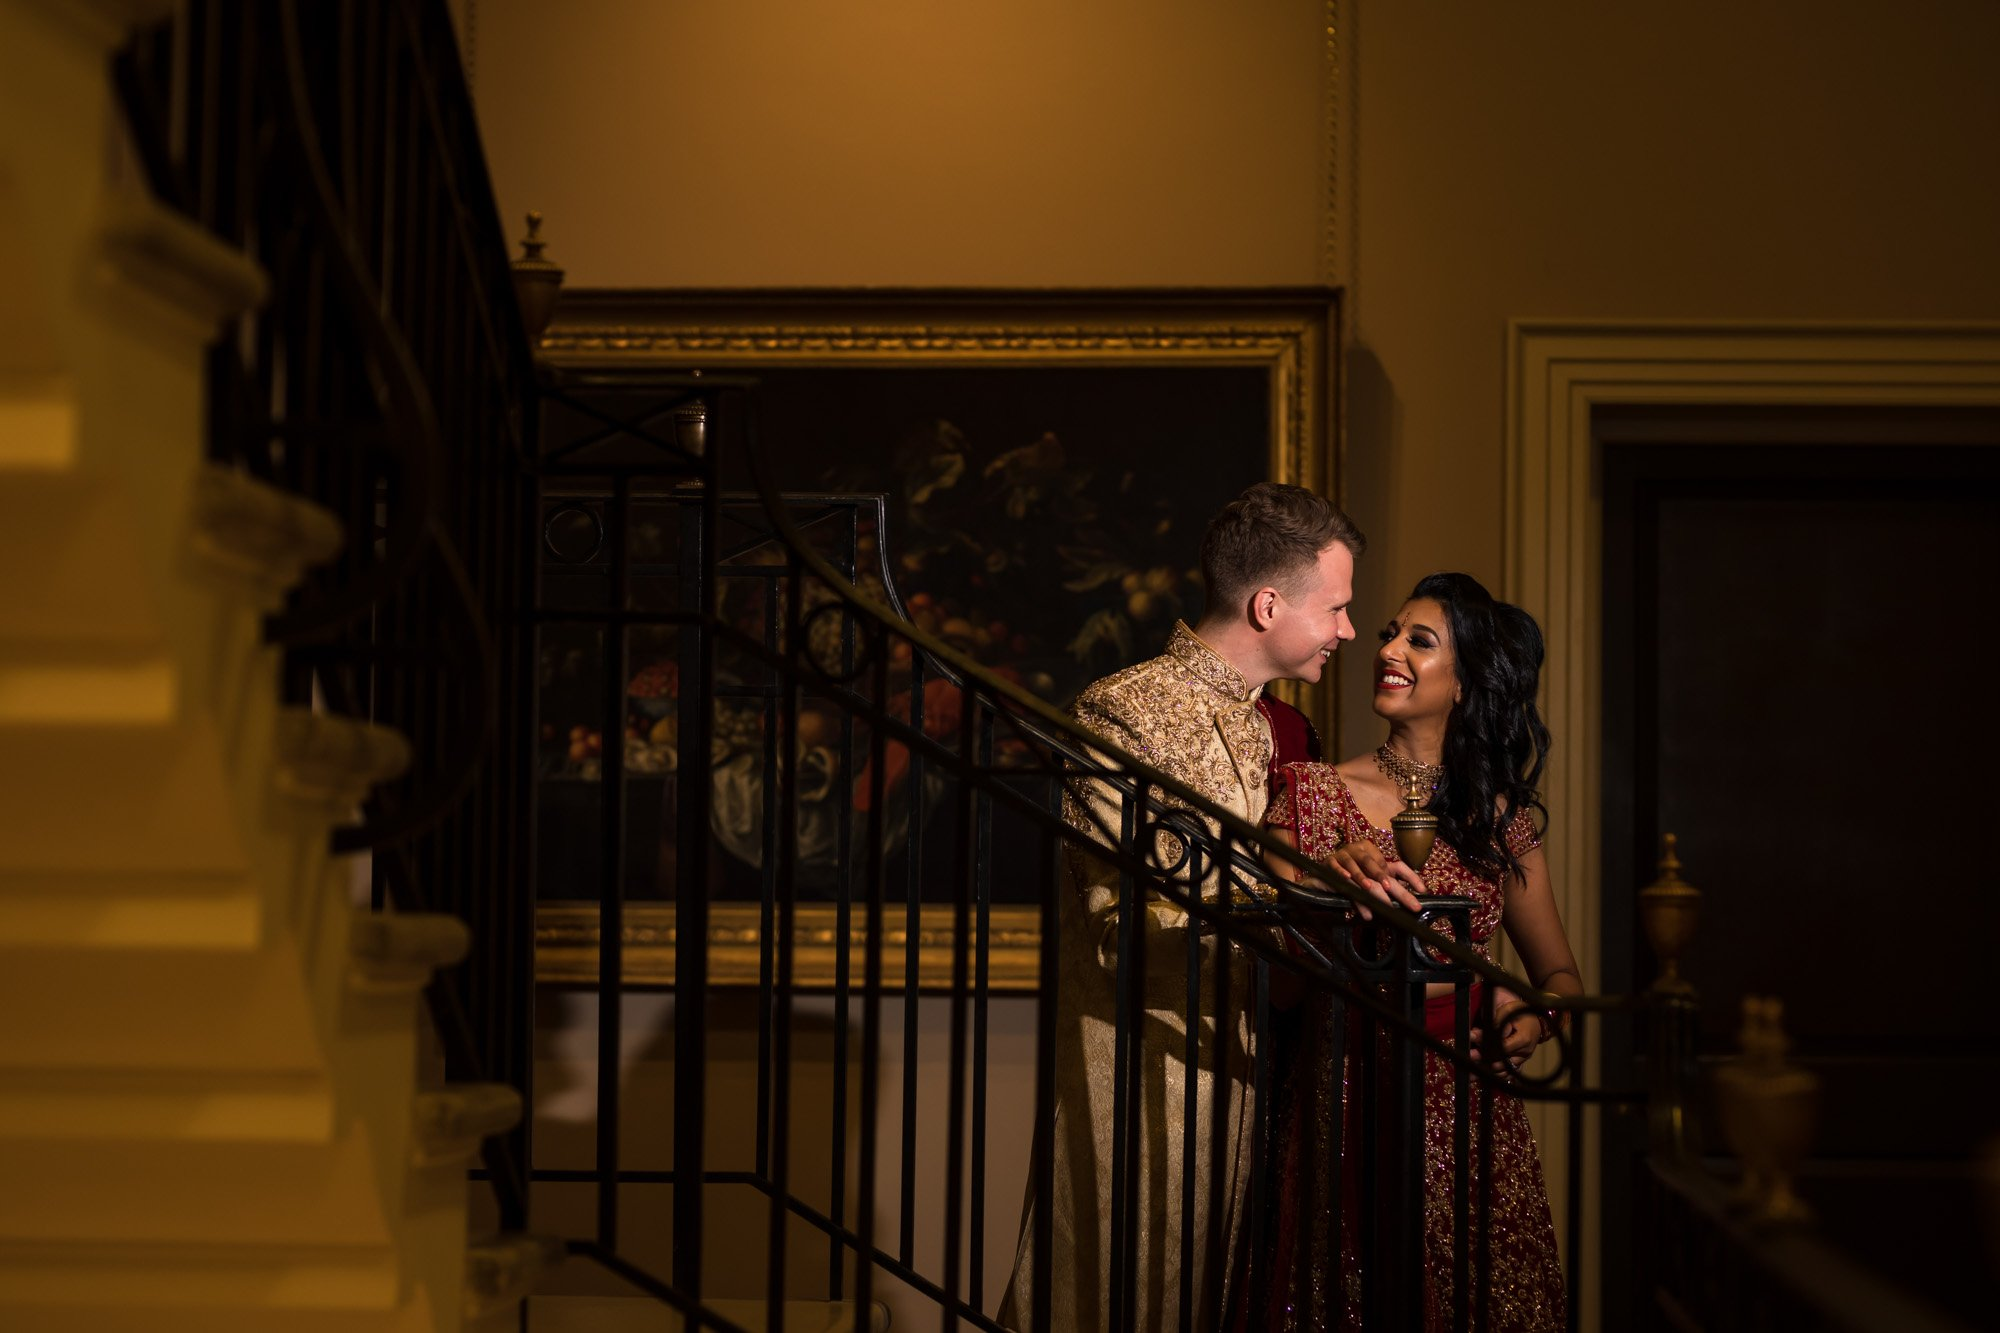 Indian wedding photographers, Bath, Somerset, Holburne Museum, portraits